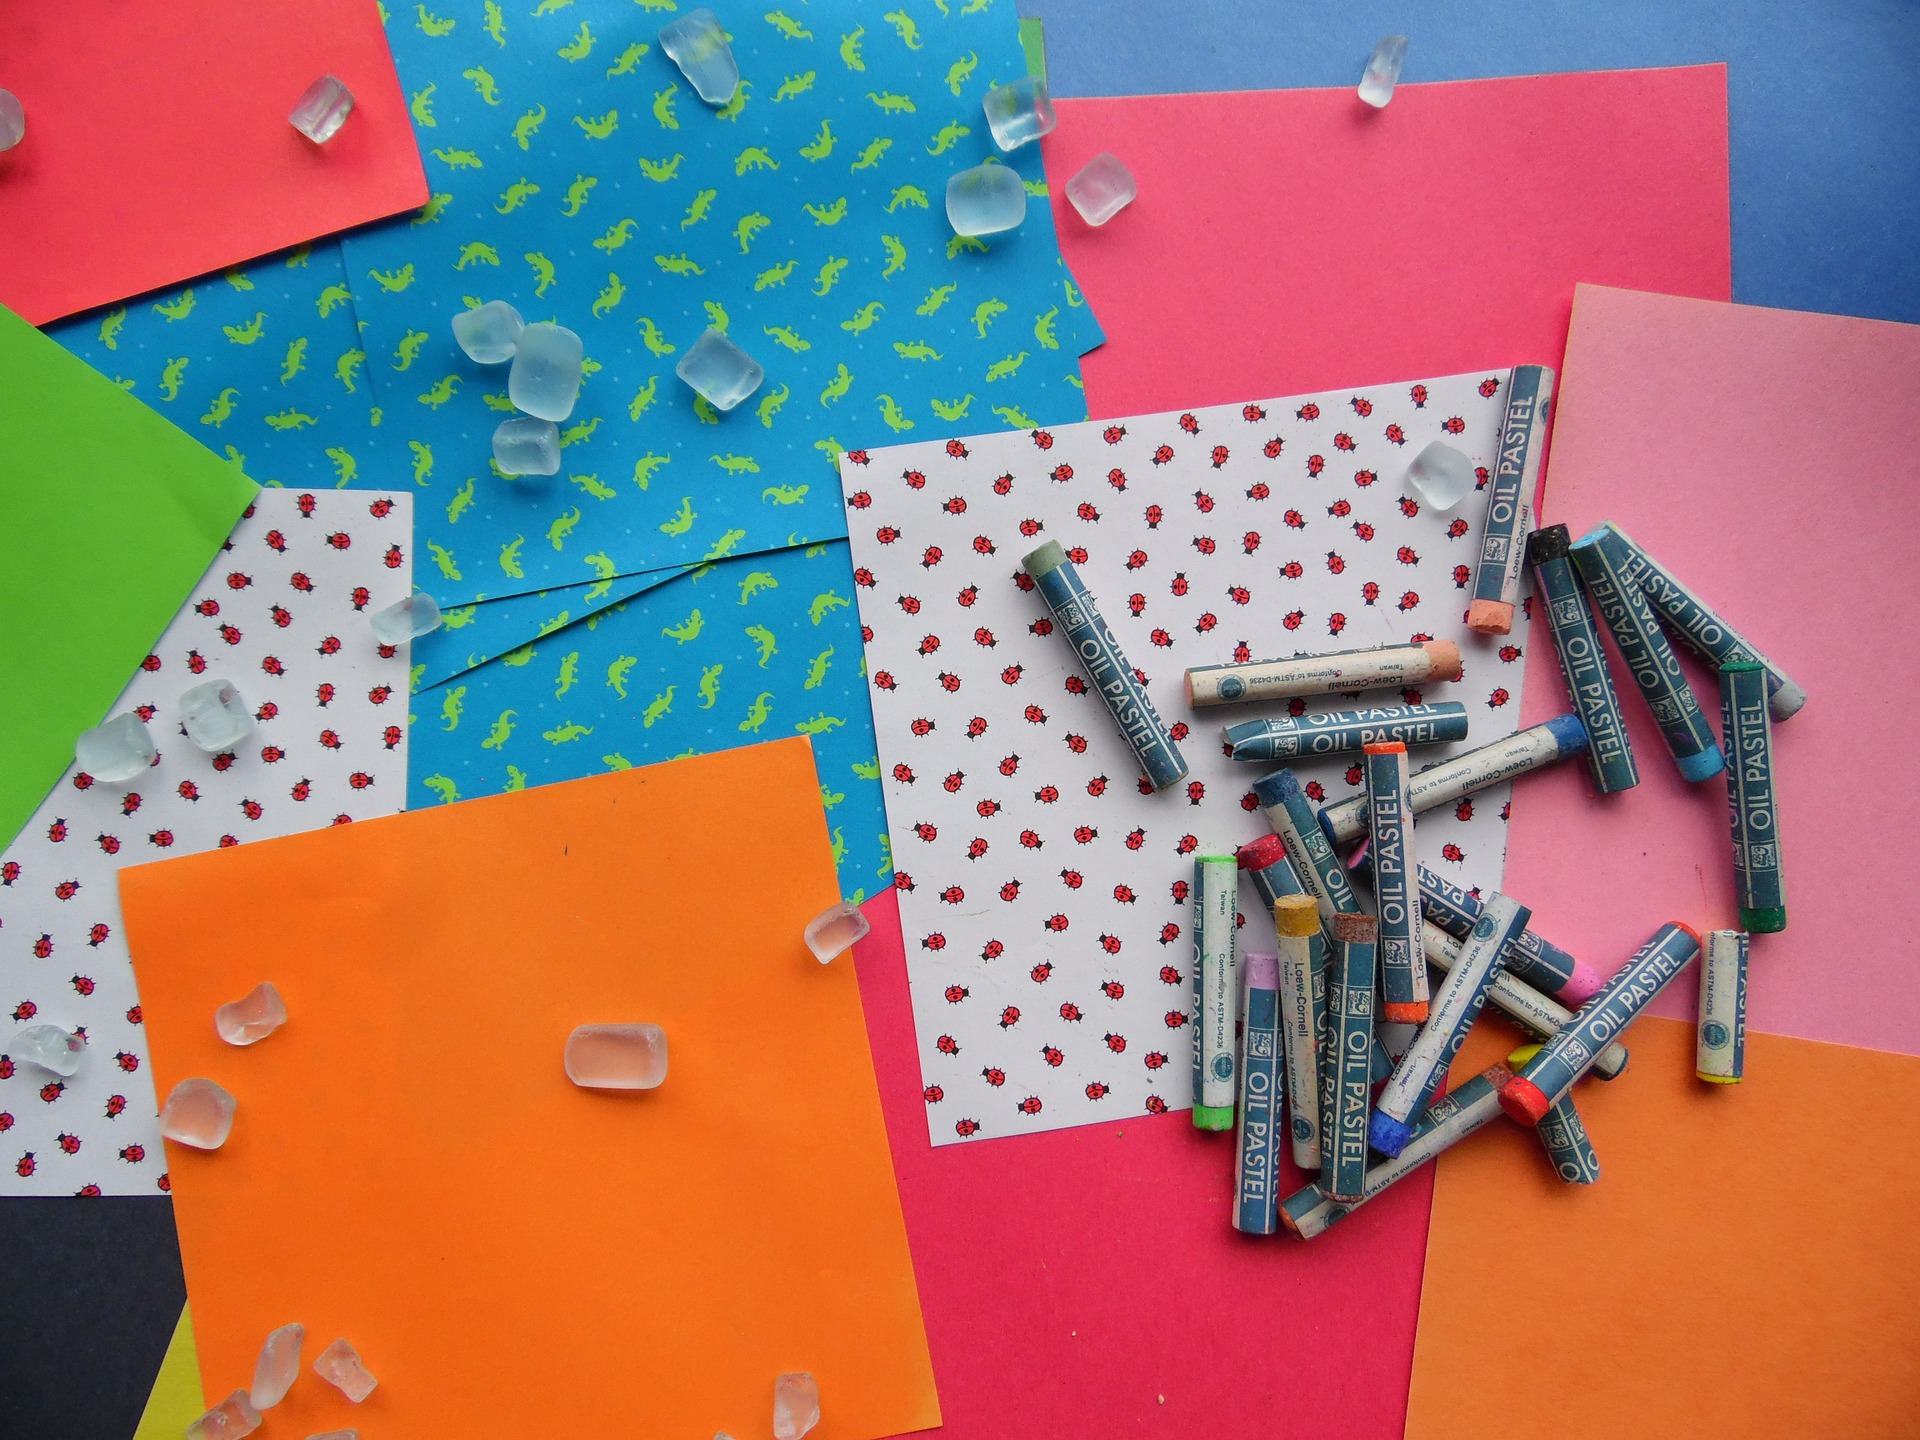 Organizing & Archiving School Keepsakes from the Year